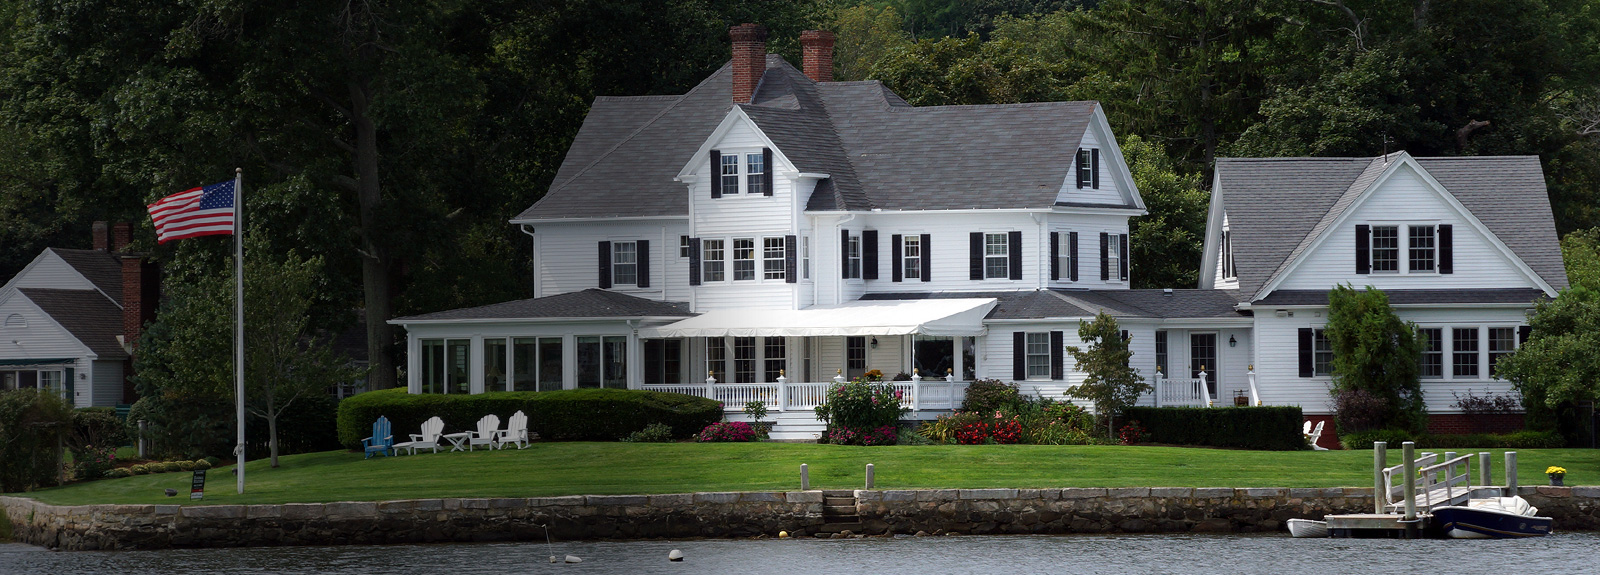 Home Warranty Companies and Reviews in Connecticut